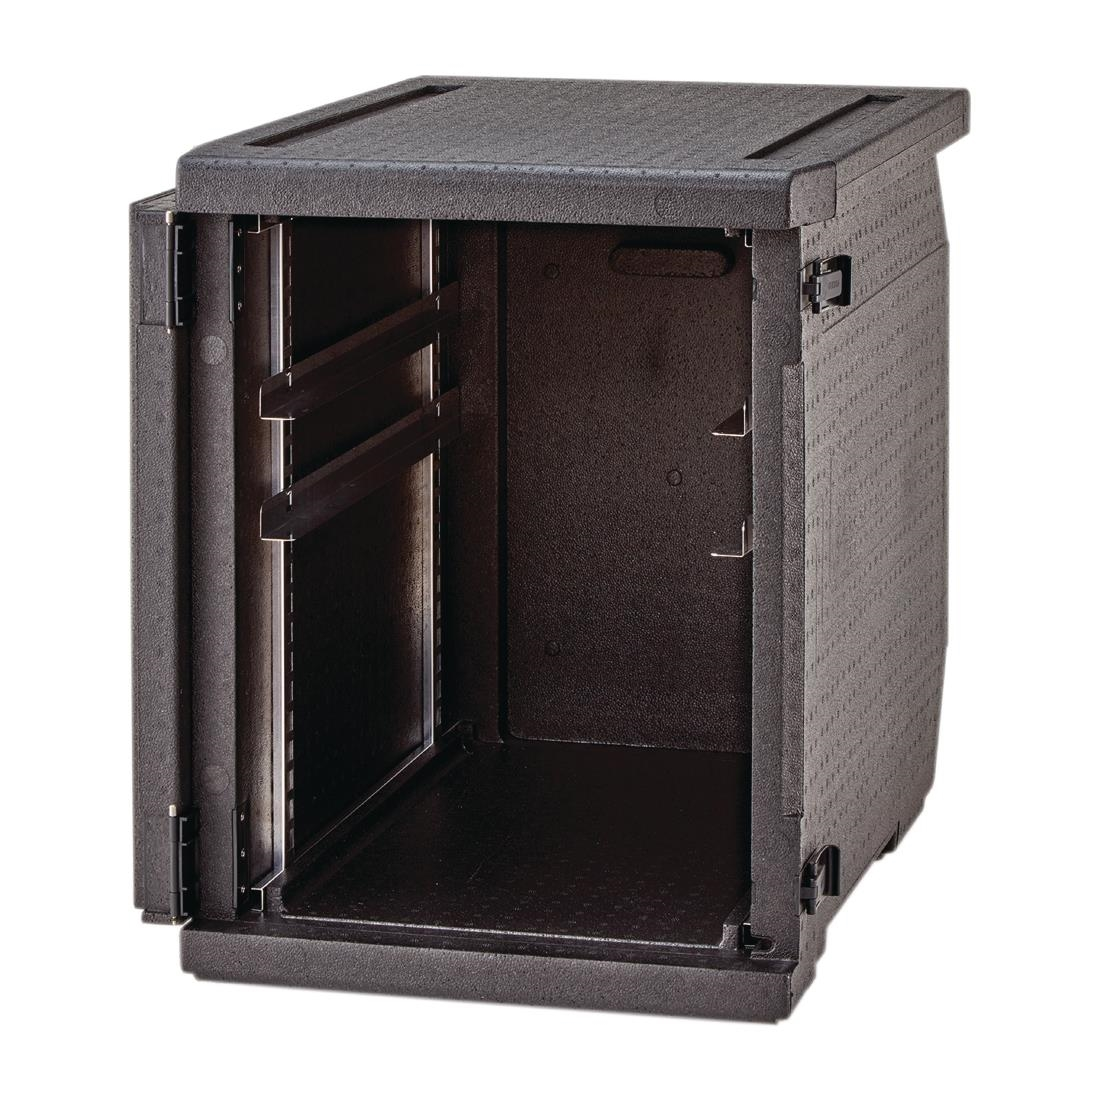 Cambro Insulated Top Loading Food Pan Carrier 155 Litre With Adjustable  Rails